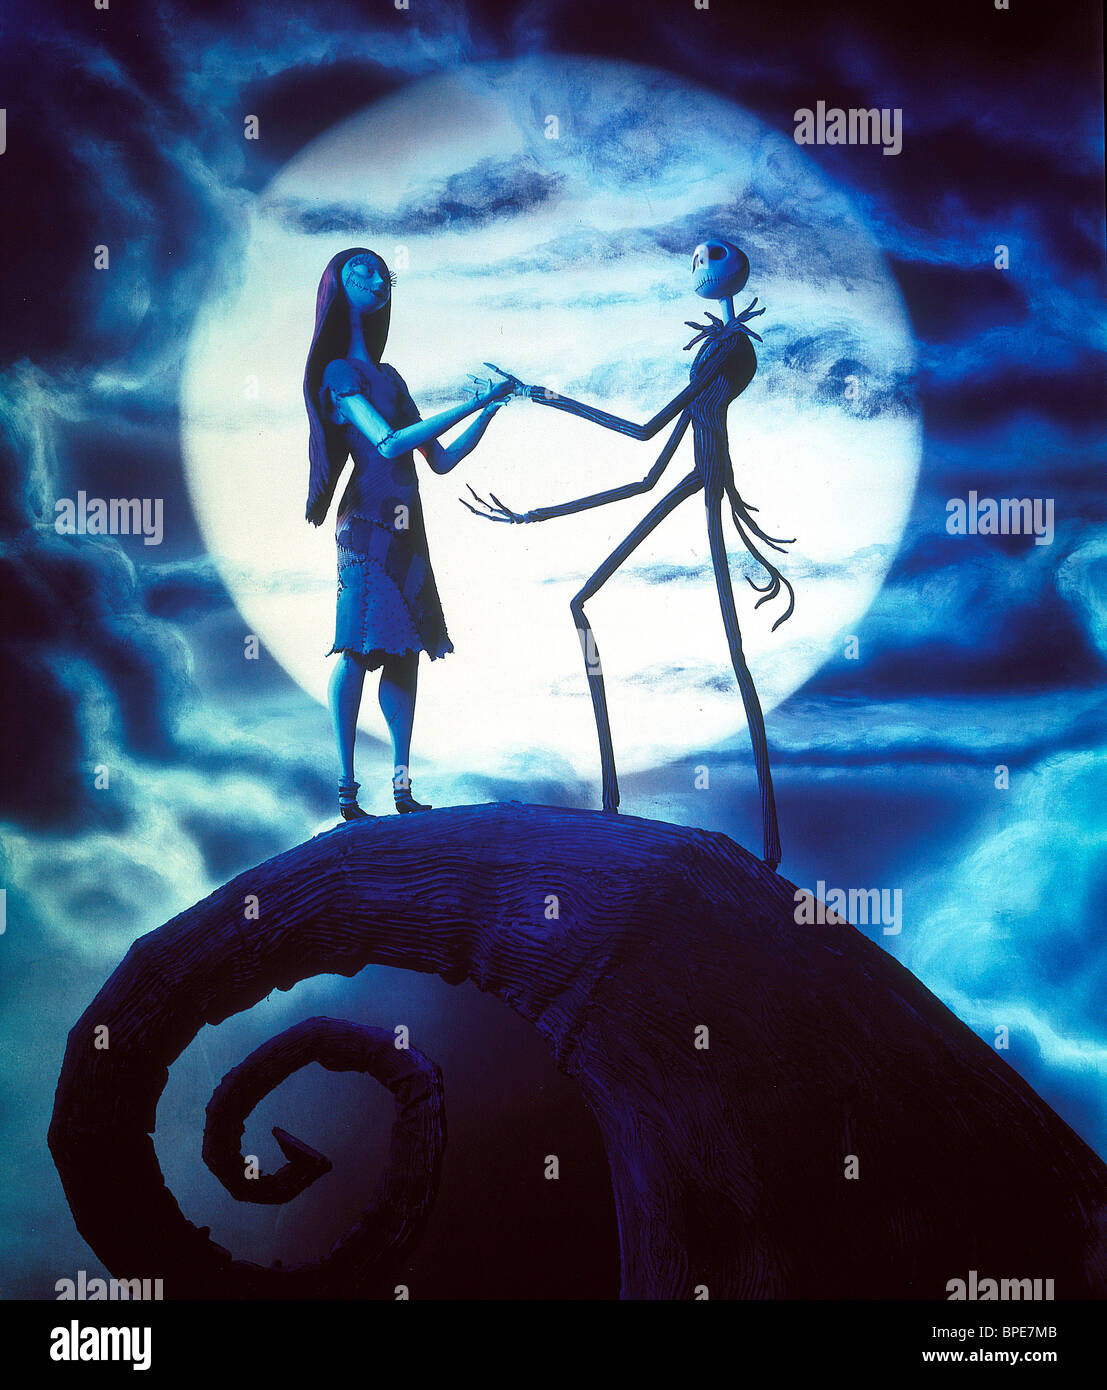 sally shock jack skellington the nightmare before christmas 1993 stock image - The Nightmare Before Christmas Jack And Sally